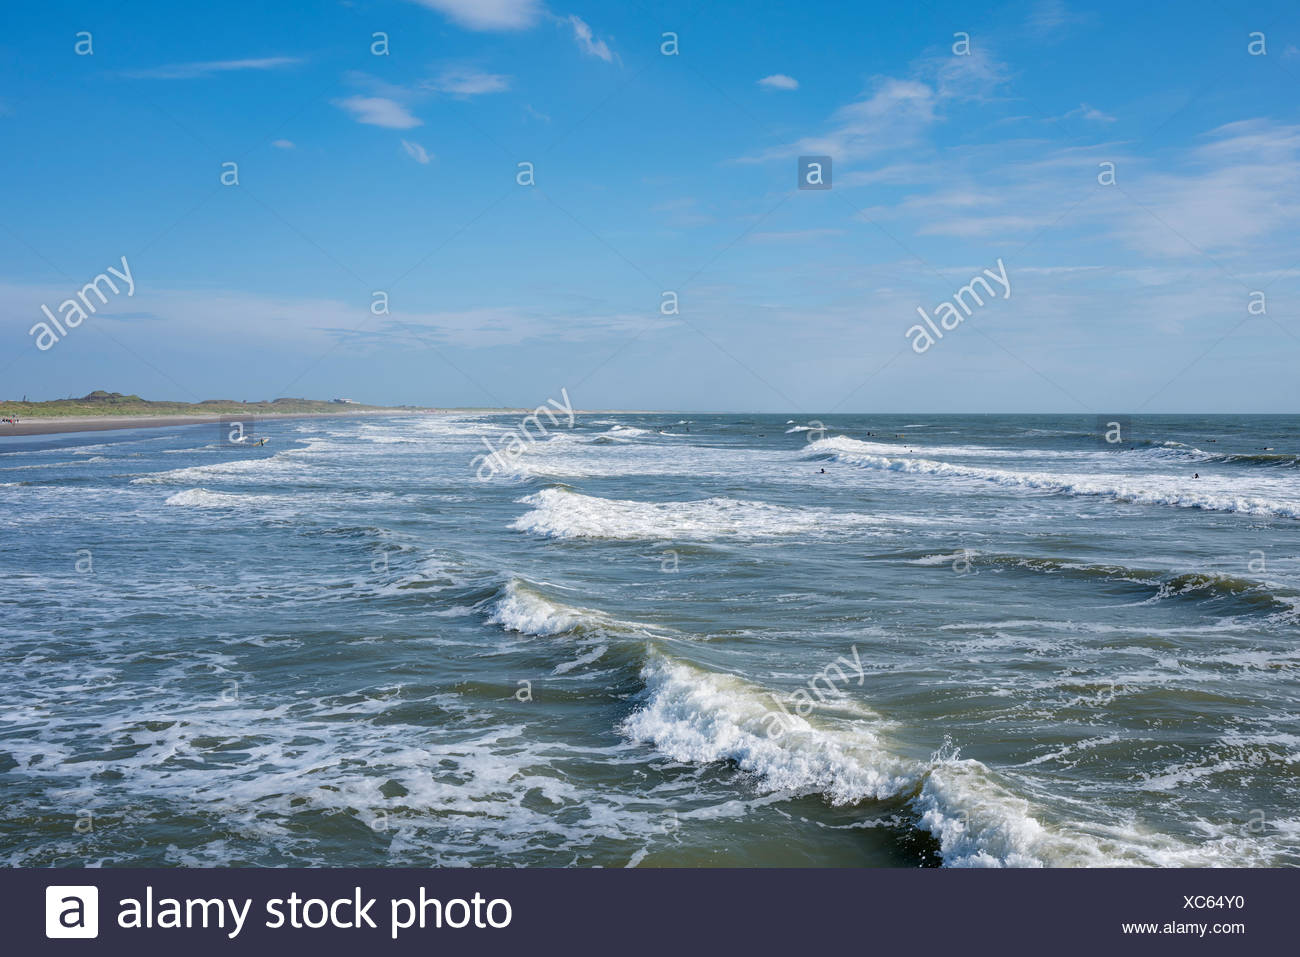 Waves at the beach, North Sea coast near Wijk aan Zee, North Holland, Netherlands - Stock Image